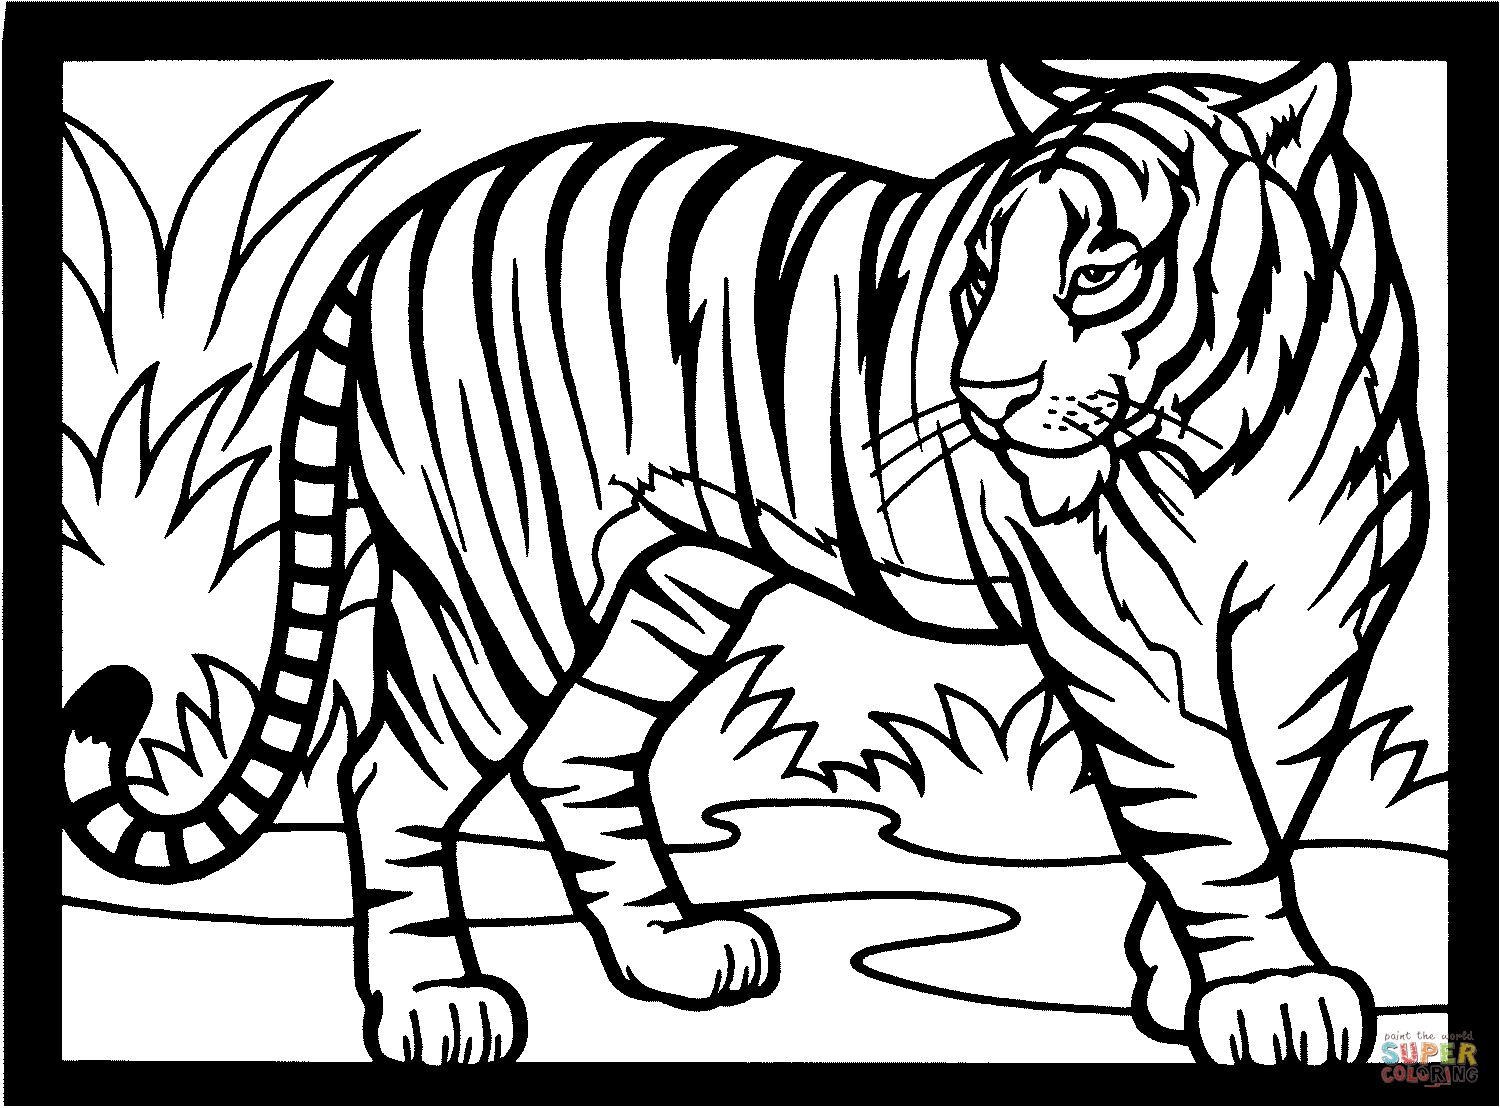 Tiger Coloring Page Tigers Coloring Pages Free Coloring Pages Albanysinsanity Com Tiger Drawing For Kids Tiger Drawing Animal Coloring Pages